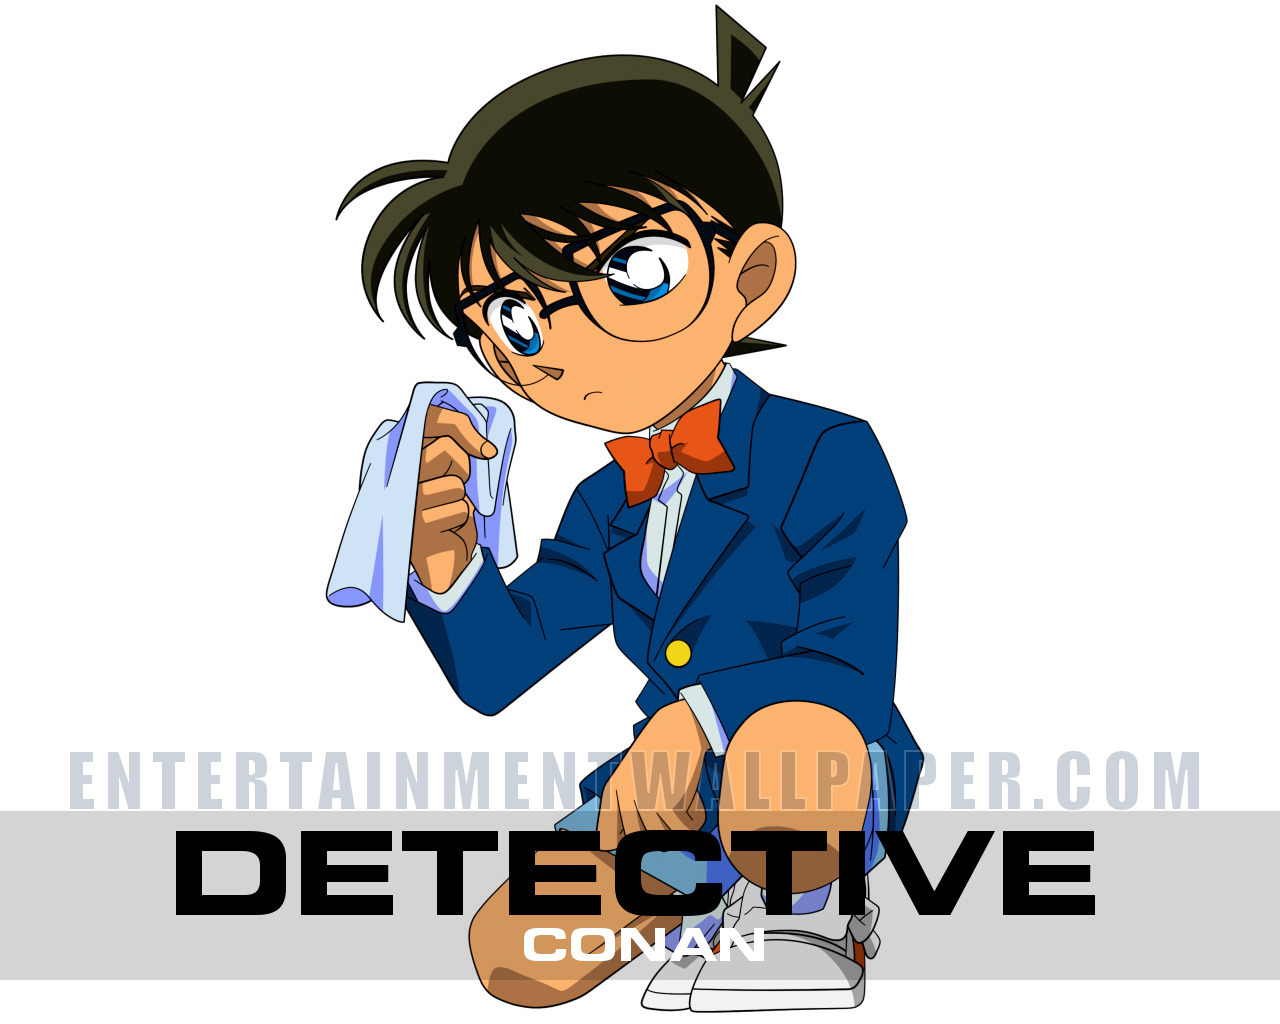 detective conan8 Pictures, Images and Photos